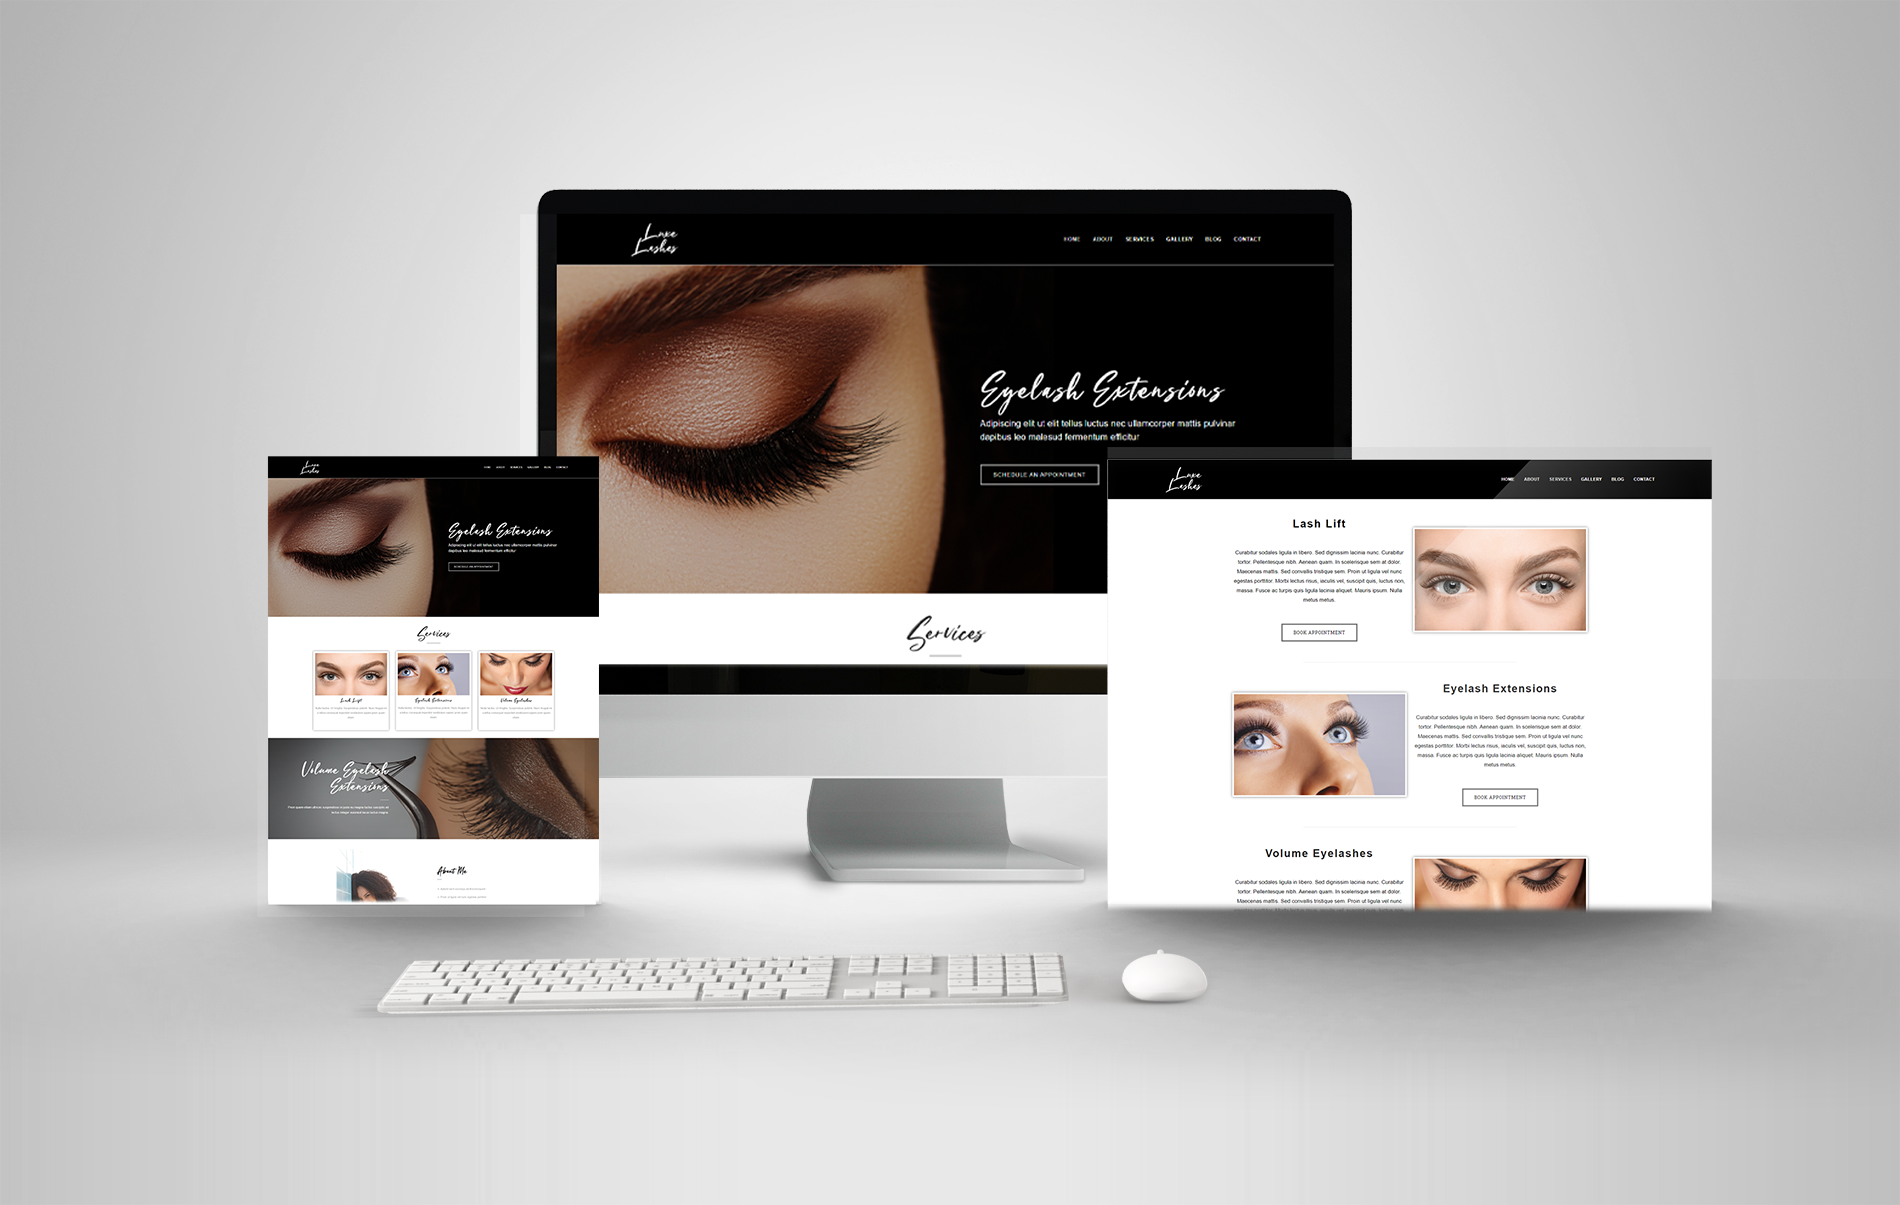 eyelash extensions demo website mockup